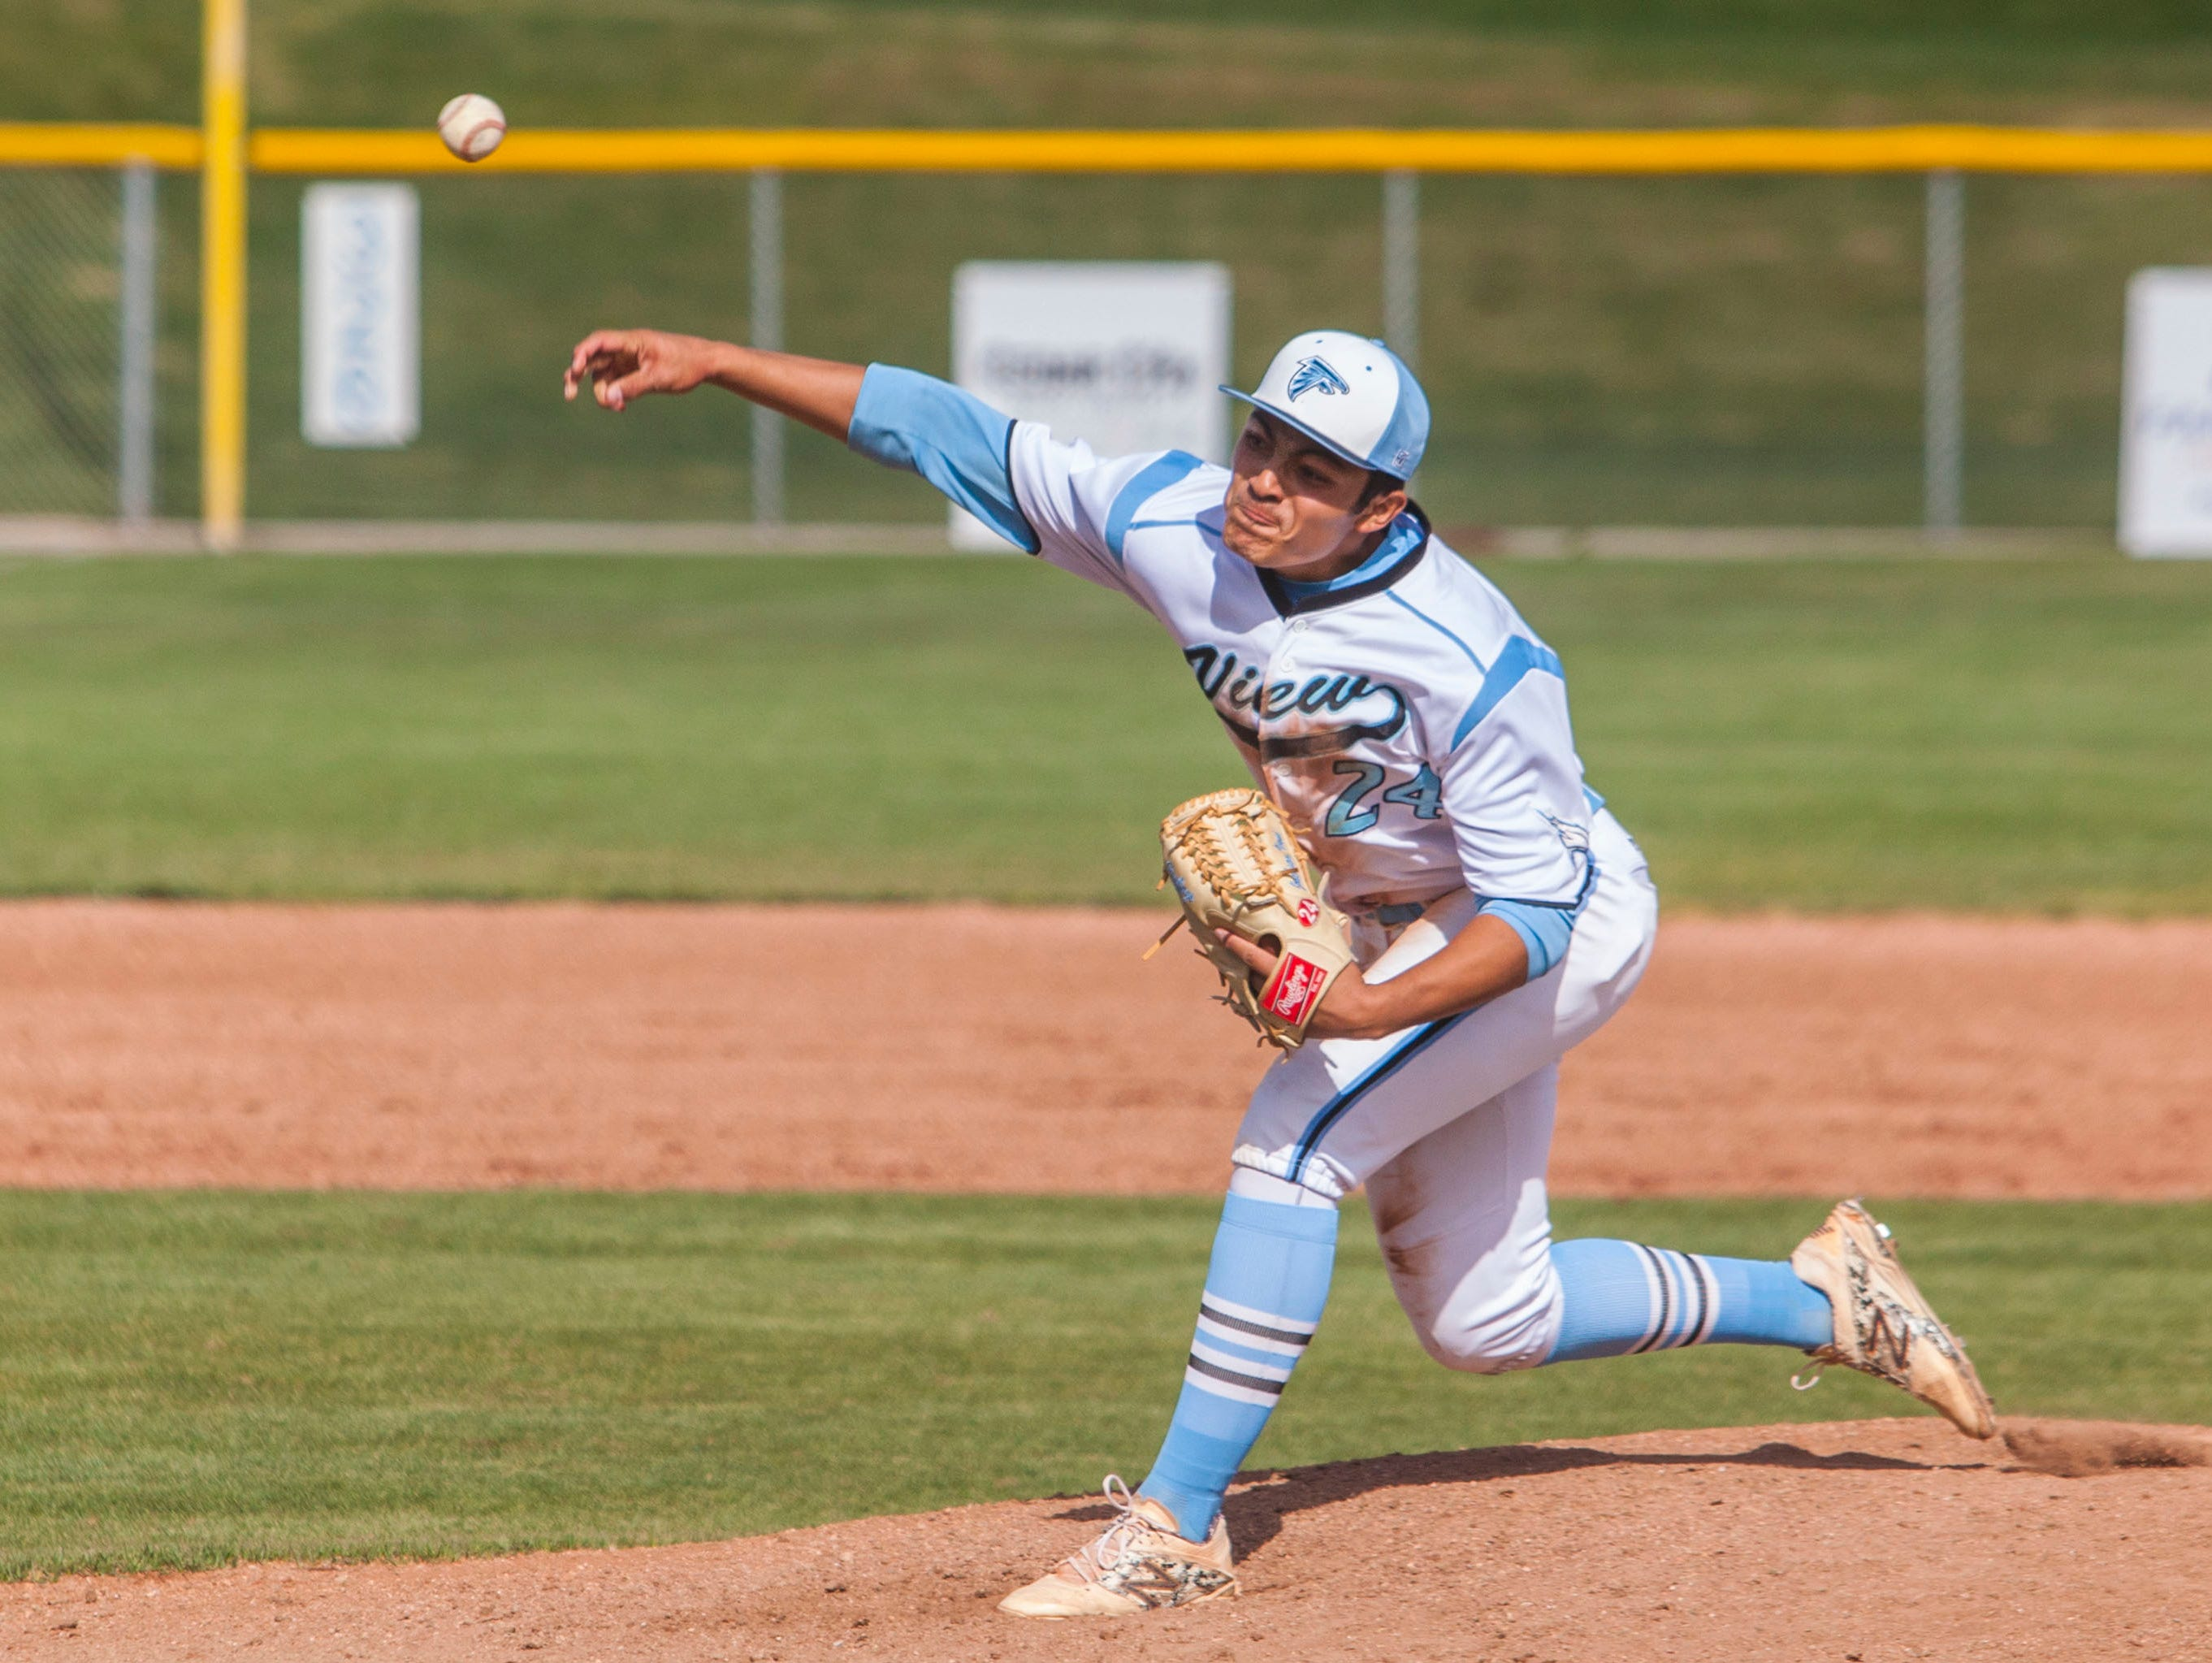 Canyon View's Jackson Vasi throws a pitch during the game against Juab, Tuesday, April 26, 2016.